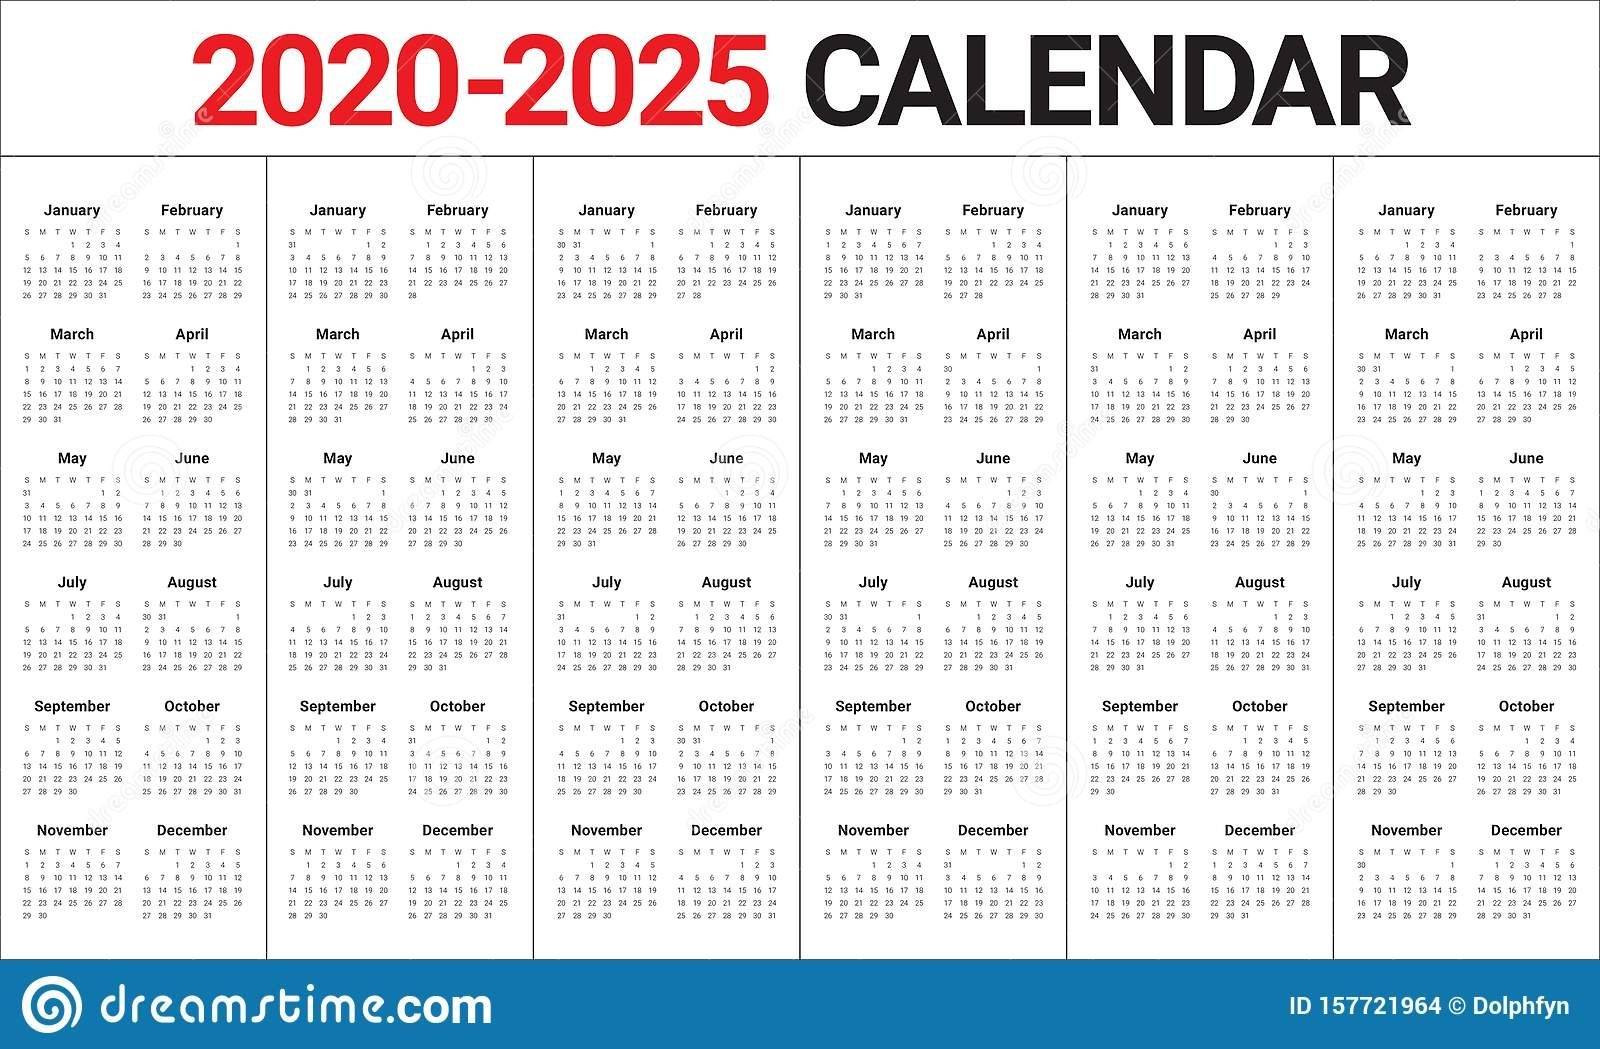 Printable Calendars 2021 To 2025 - Example Calendar Printable